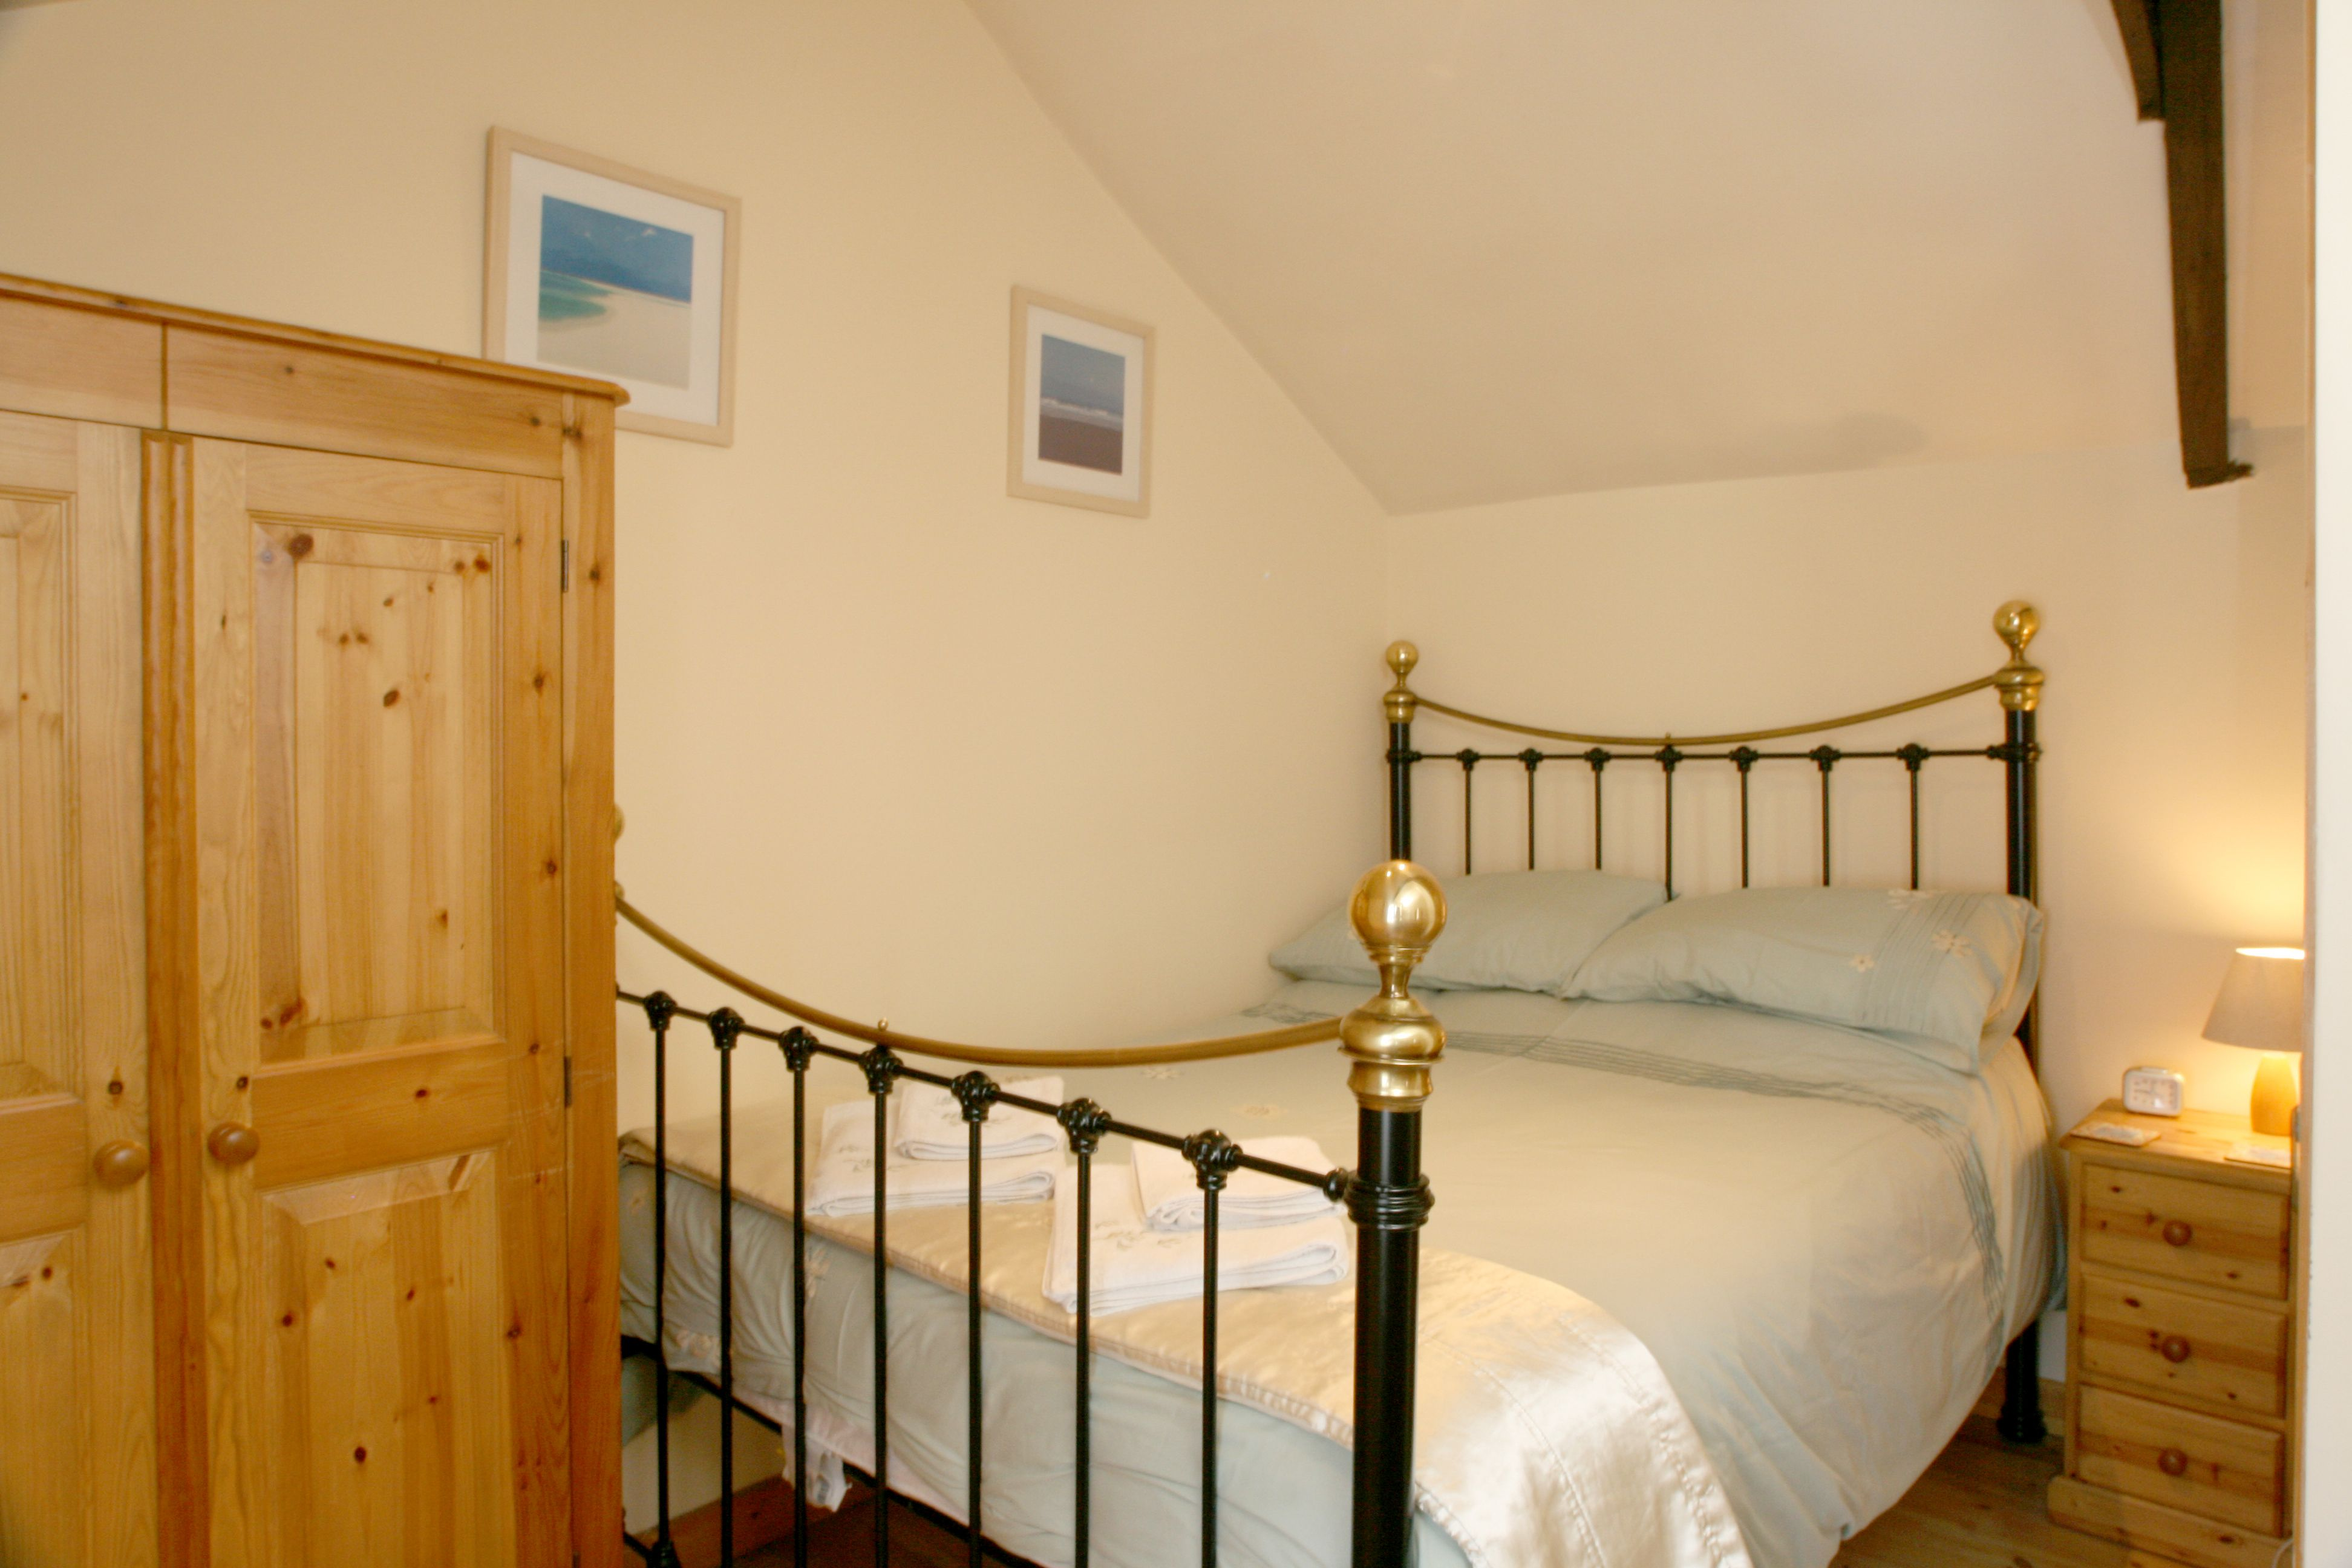 Honeysuckle Cottage, Mousehole - SLEEPS 2 - 7 nights from £228  A short stroll from Mousehole's quaint working harbour, sits this enchanting bolthole for two... live the harbourside dream in your own cottage this January!  http://www.cornishcottageholidays.co.uk/html/property_detail.php?pid=45